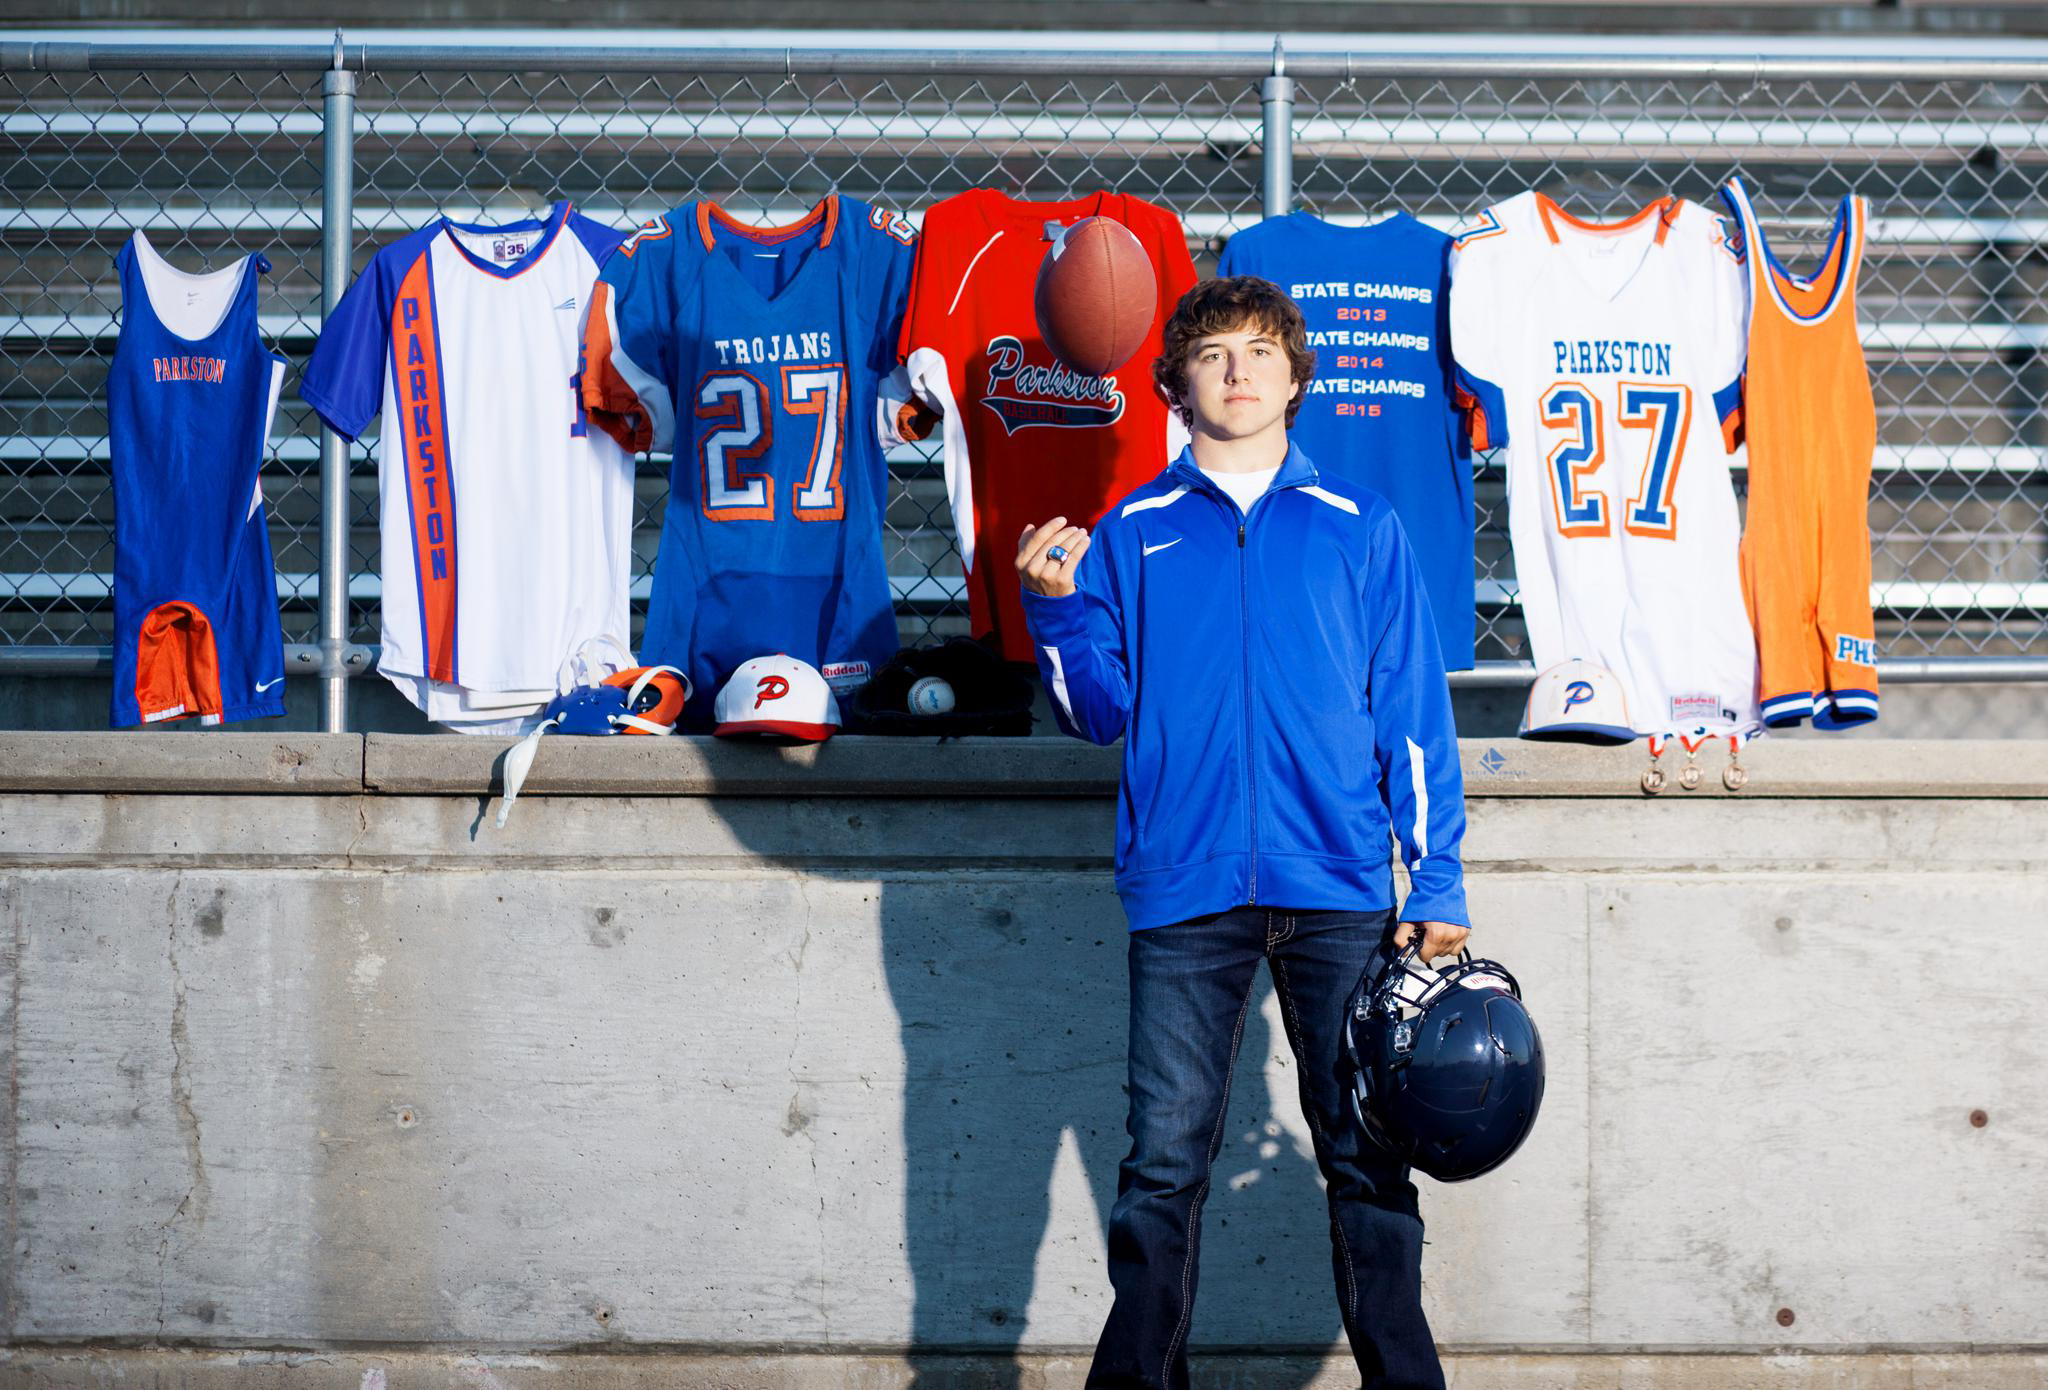 brunette senior guy standing in front of high school jerseys tossing a football in the air